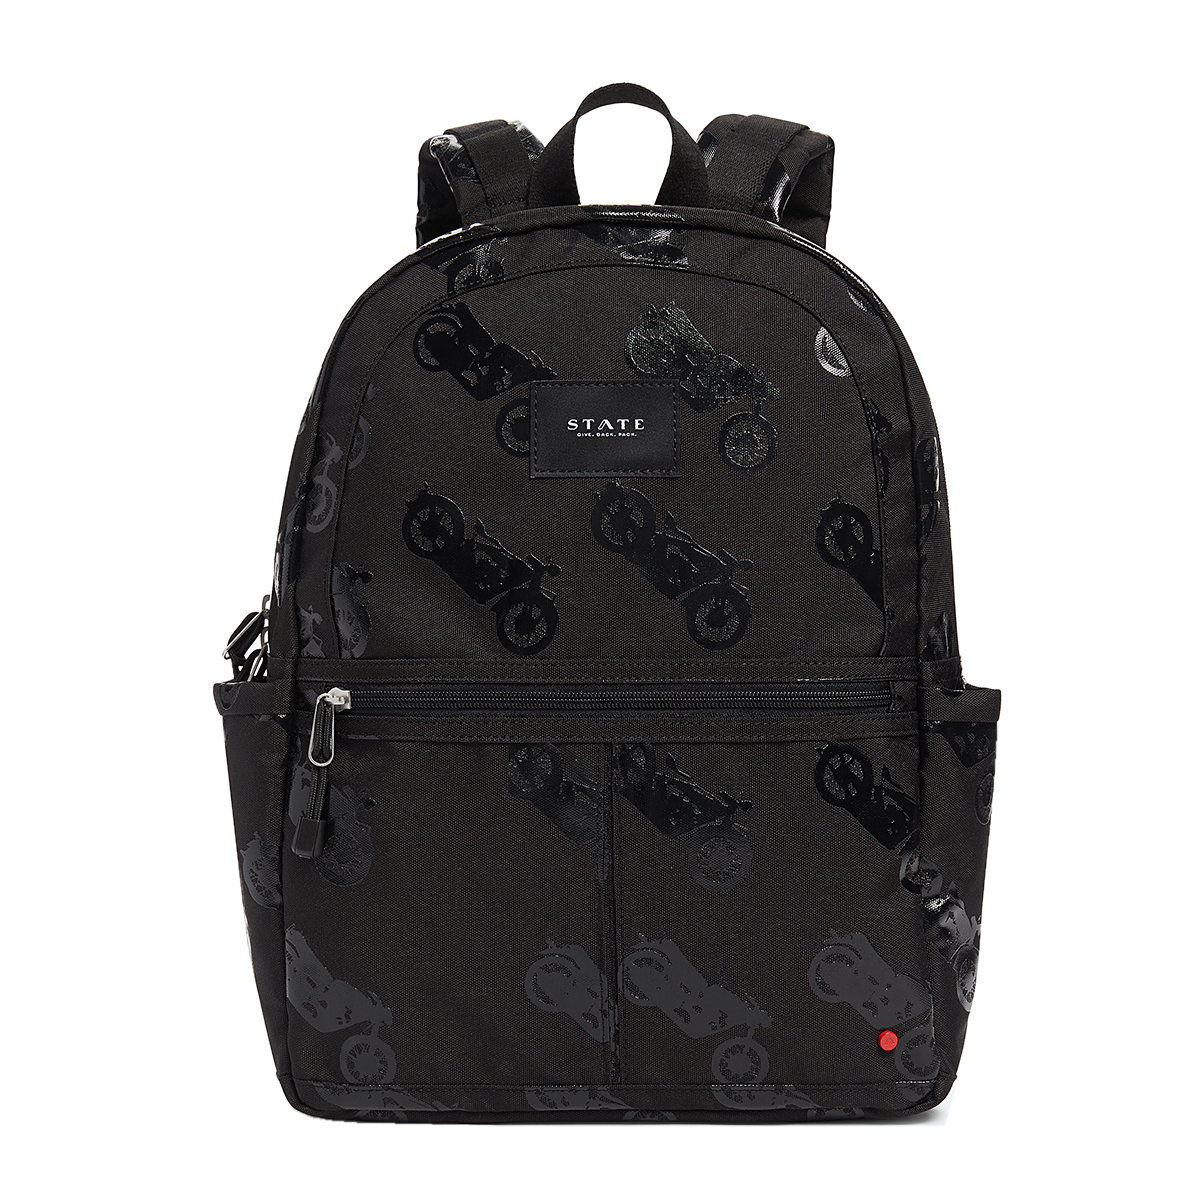 State Bags Kane Backpack in Motorcycle Black